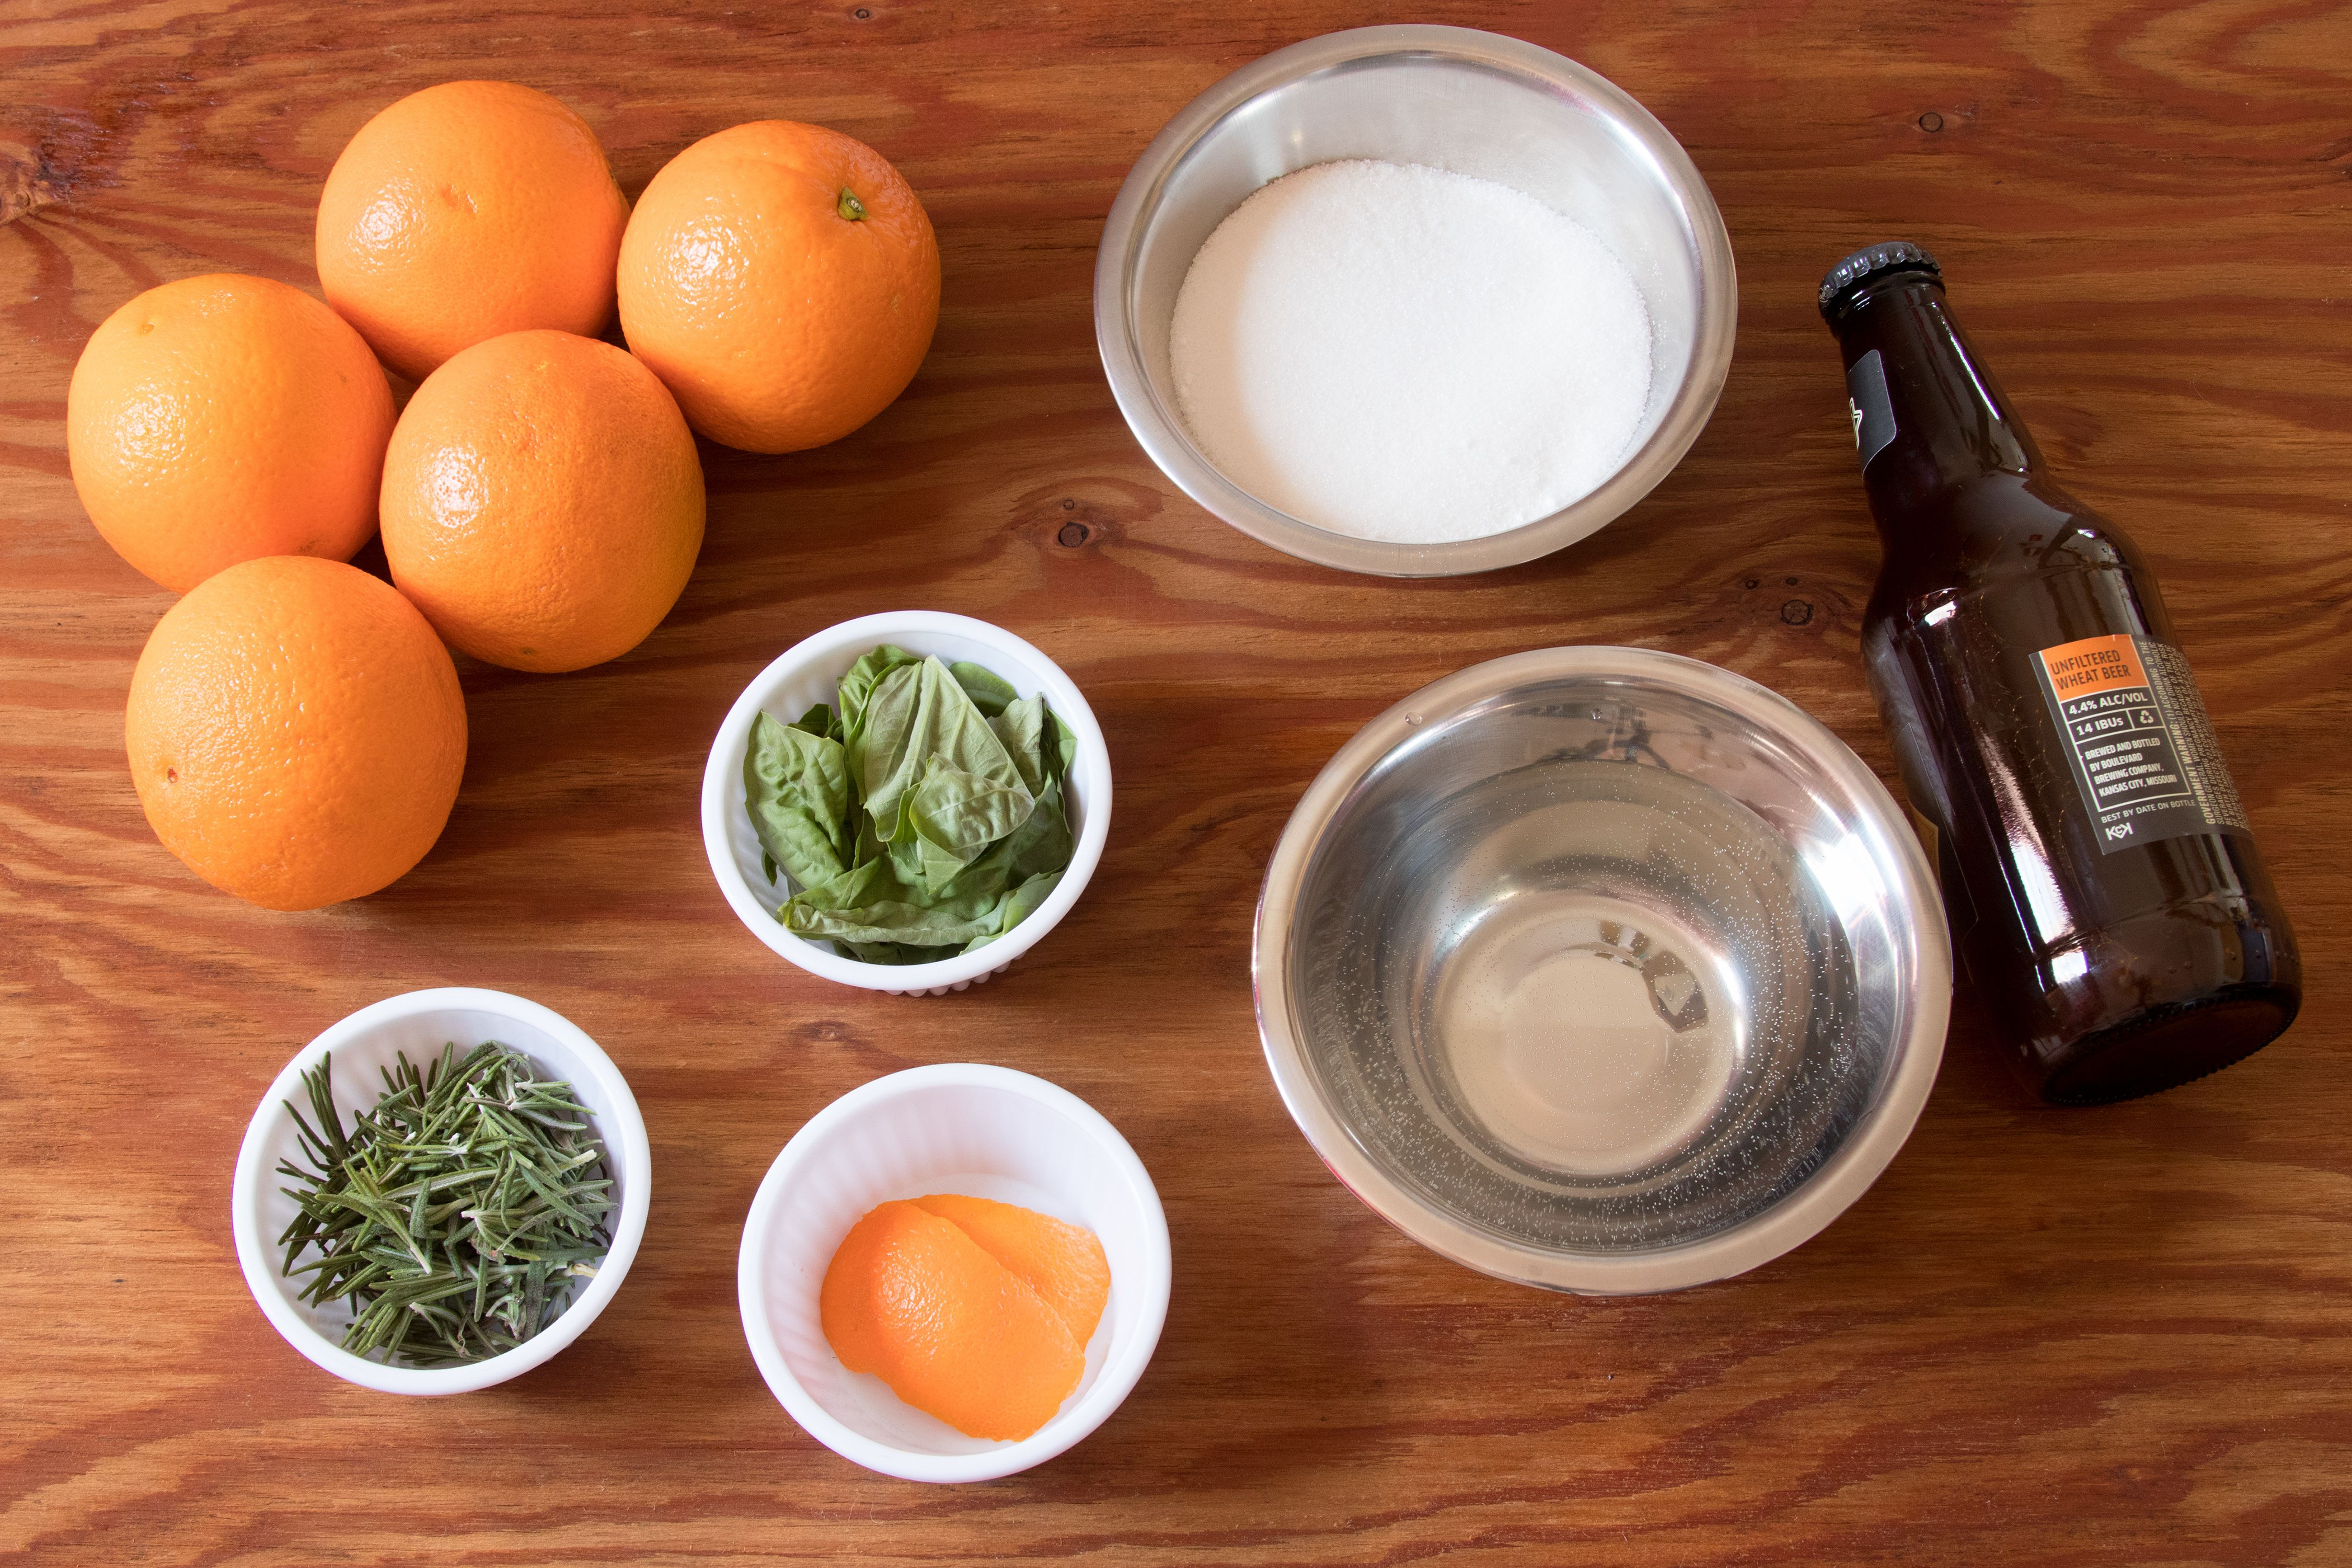 Ingredients for a Homemade Basil-Rosemary Orange Shandy